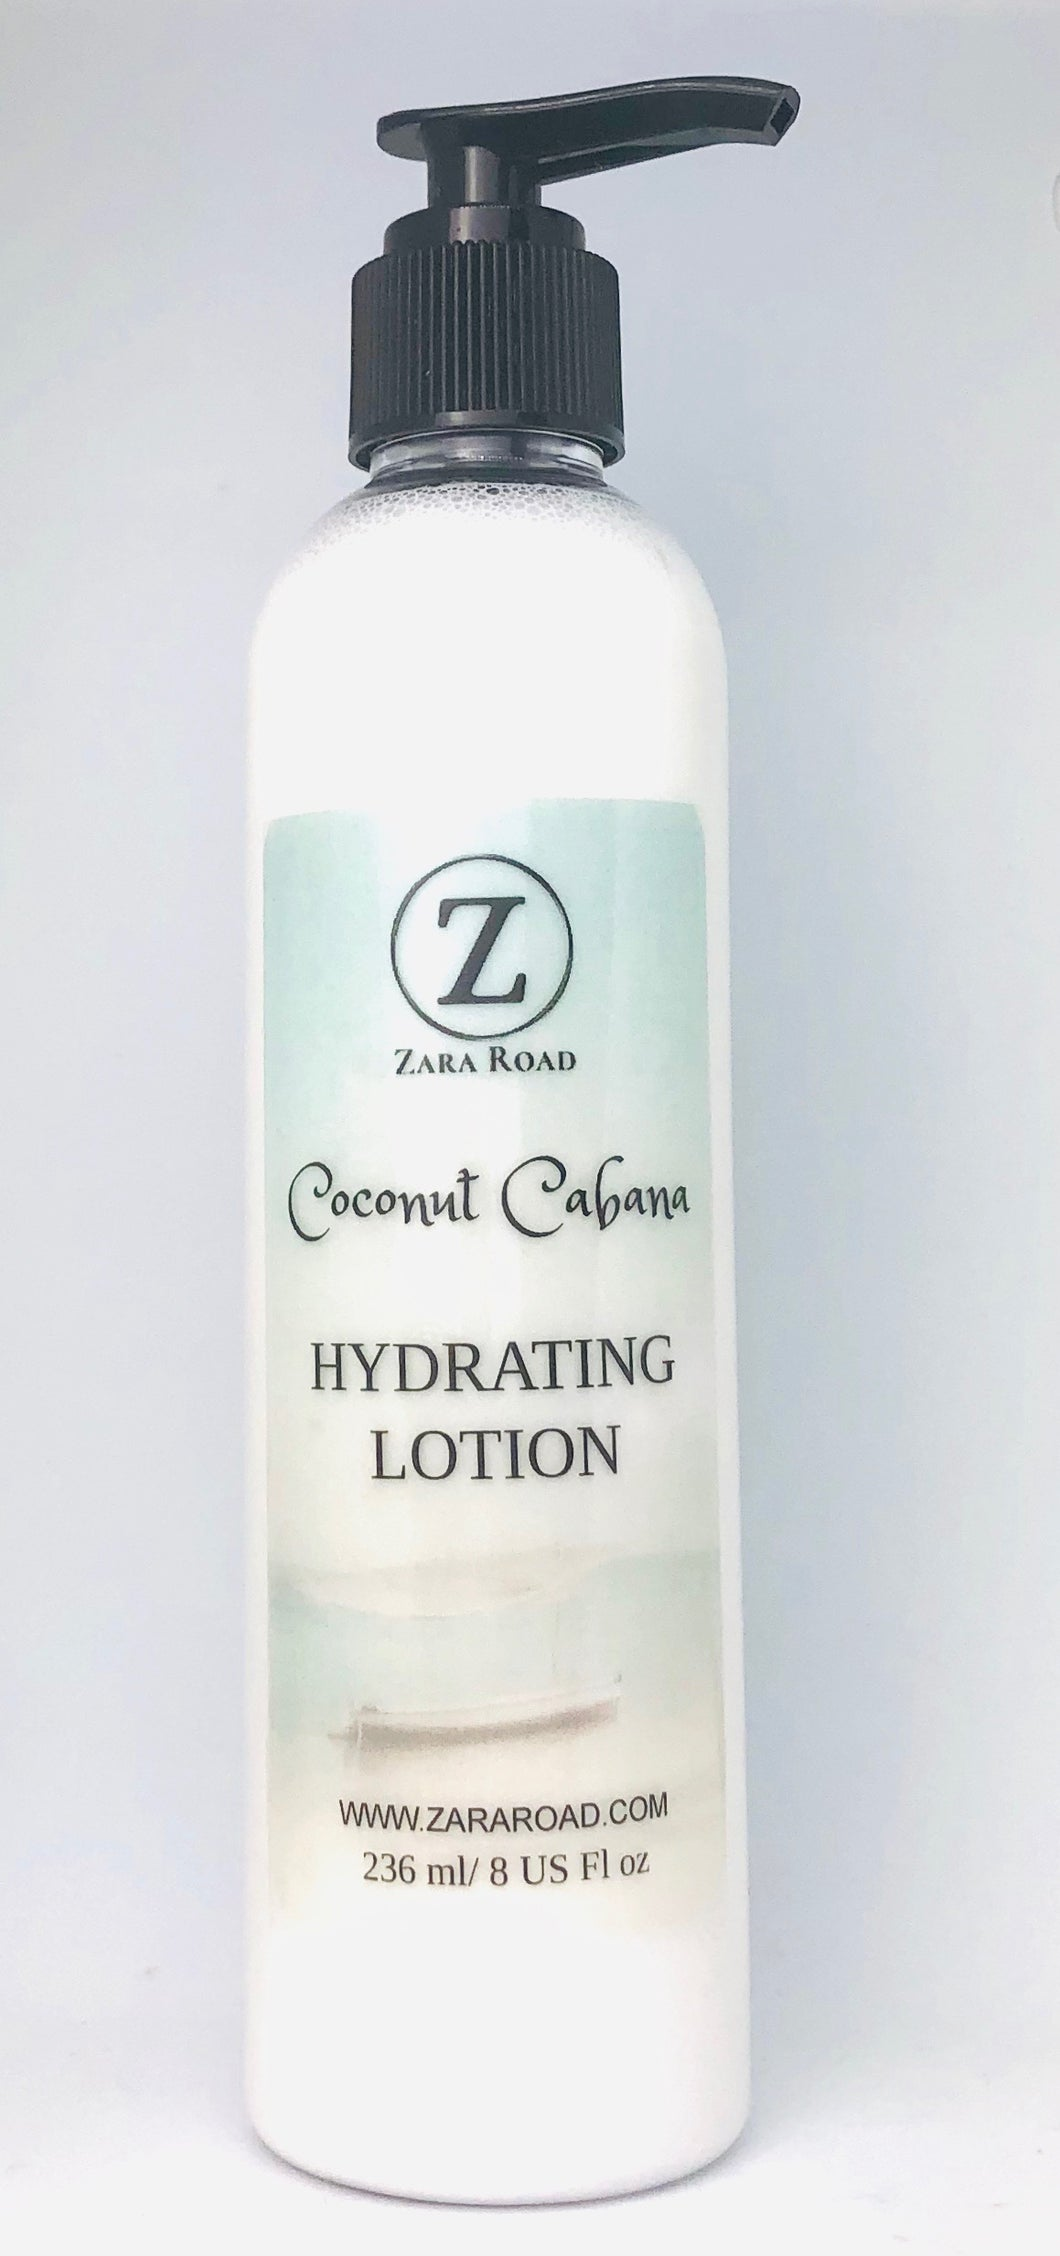 Coconut Cabana Hydrating Lotion